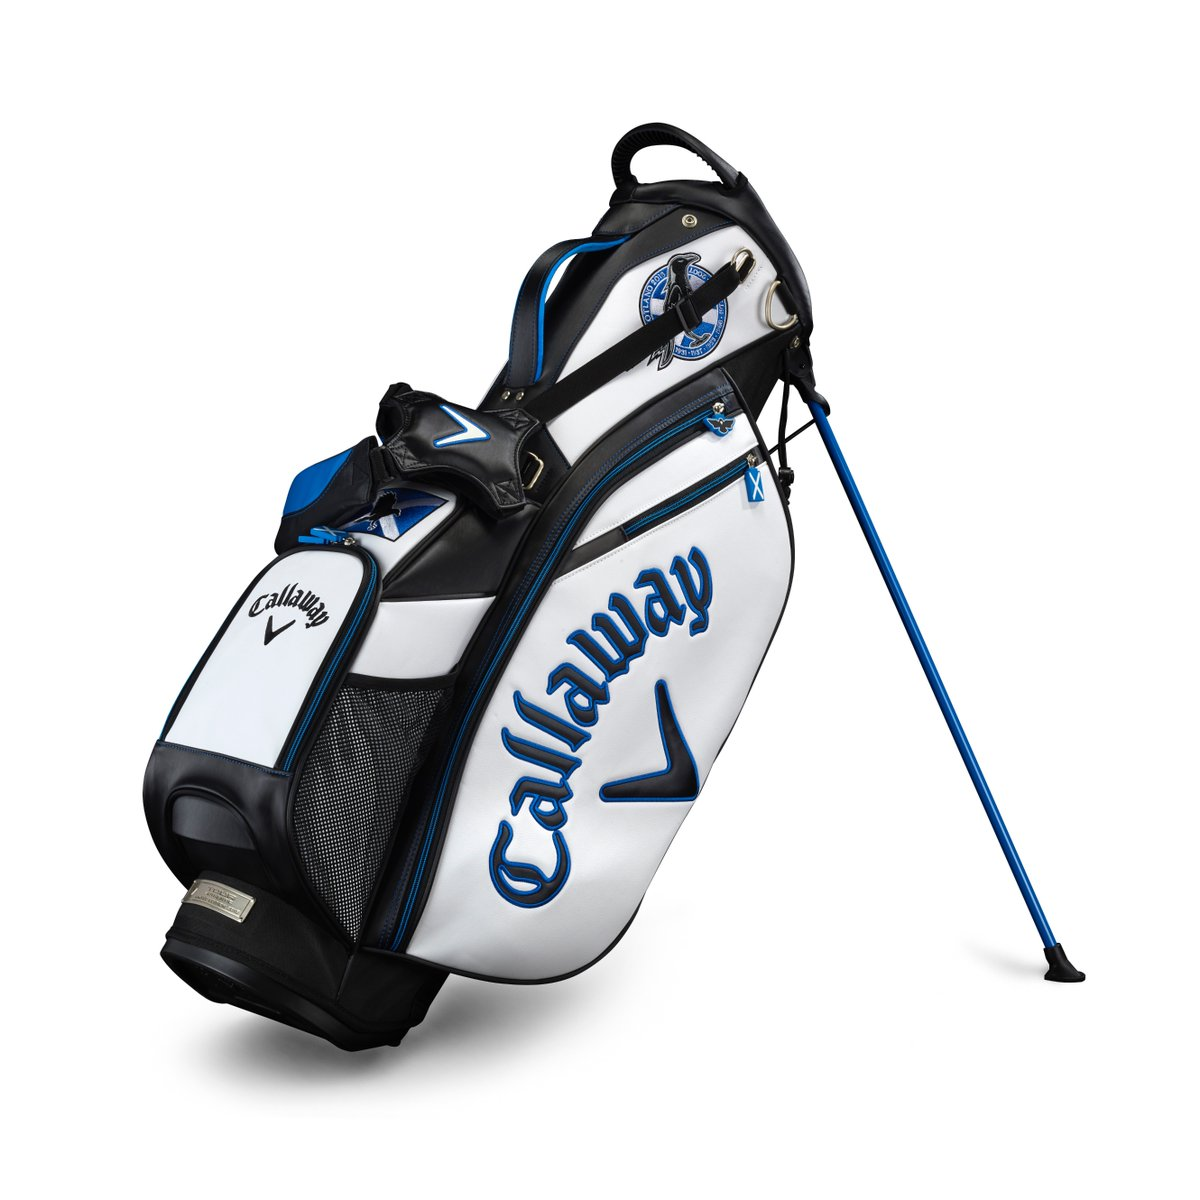 💥FLASH GIVEAWAY💥 We have two July Major Stand Bag up for grabs. Simply RT + FOLLOW for your chance to win. Sweepstake ends MIDNIGHT tonight (Sat 21st July)! Good luck #TeamCallaway!